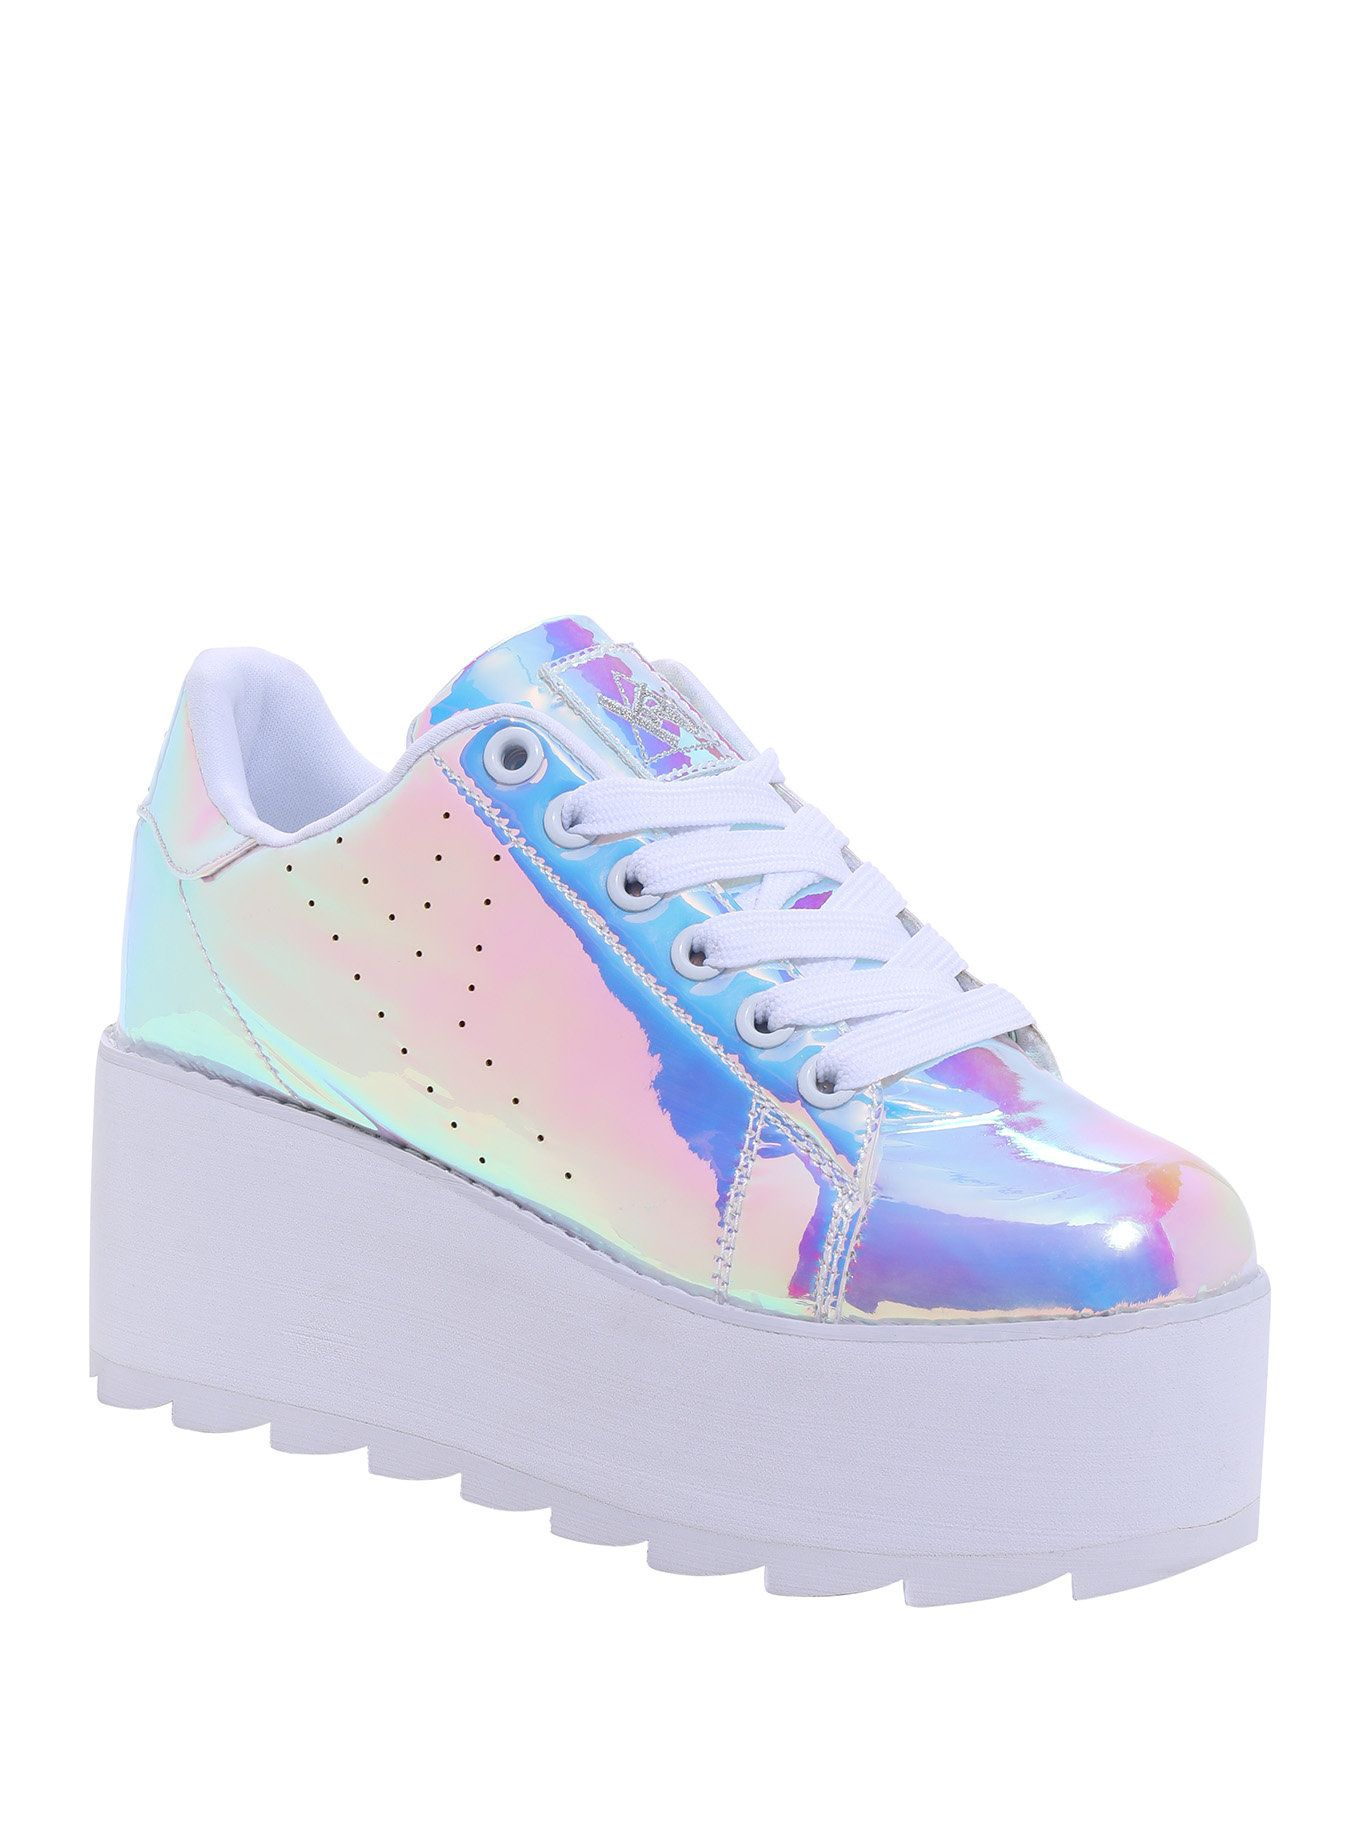 341d5e18089b Step into another galaxy when you put on these hologram shoes from Y.R.U.!  The upper reflects all pastel colors of the rainbow and the ridged platform  is 3